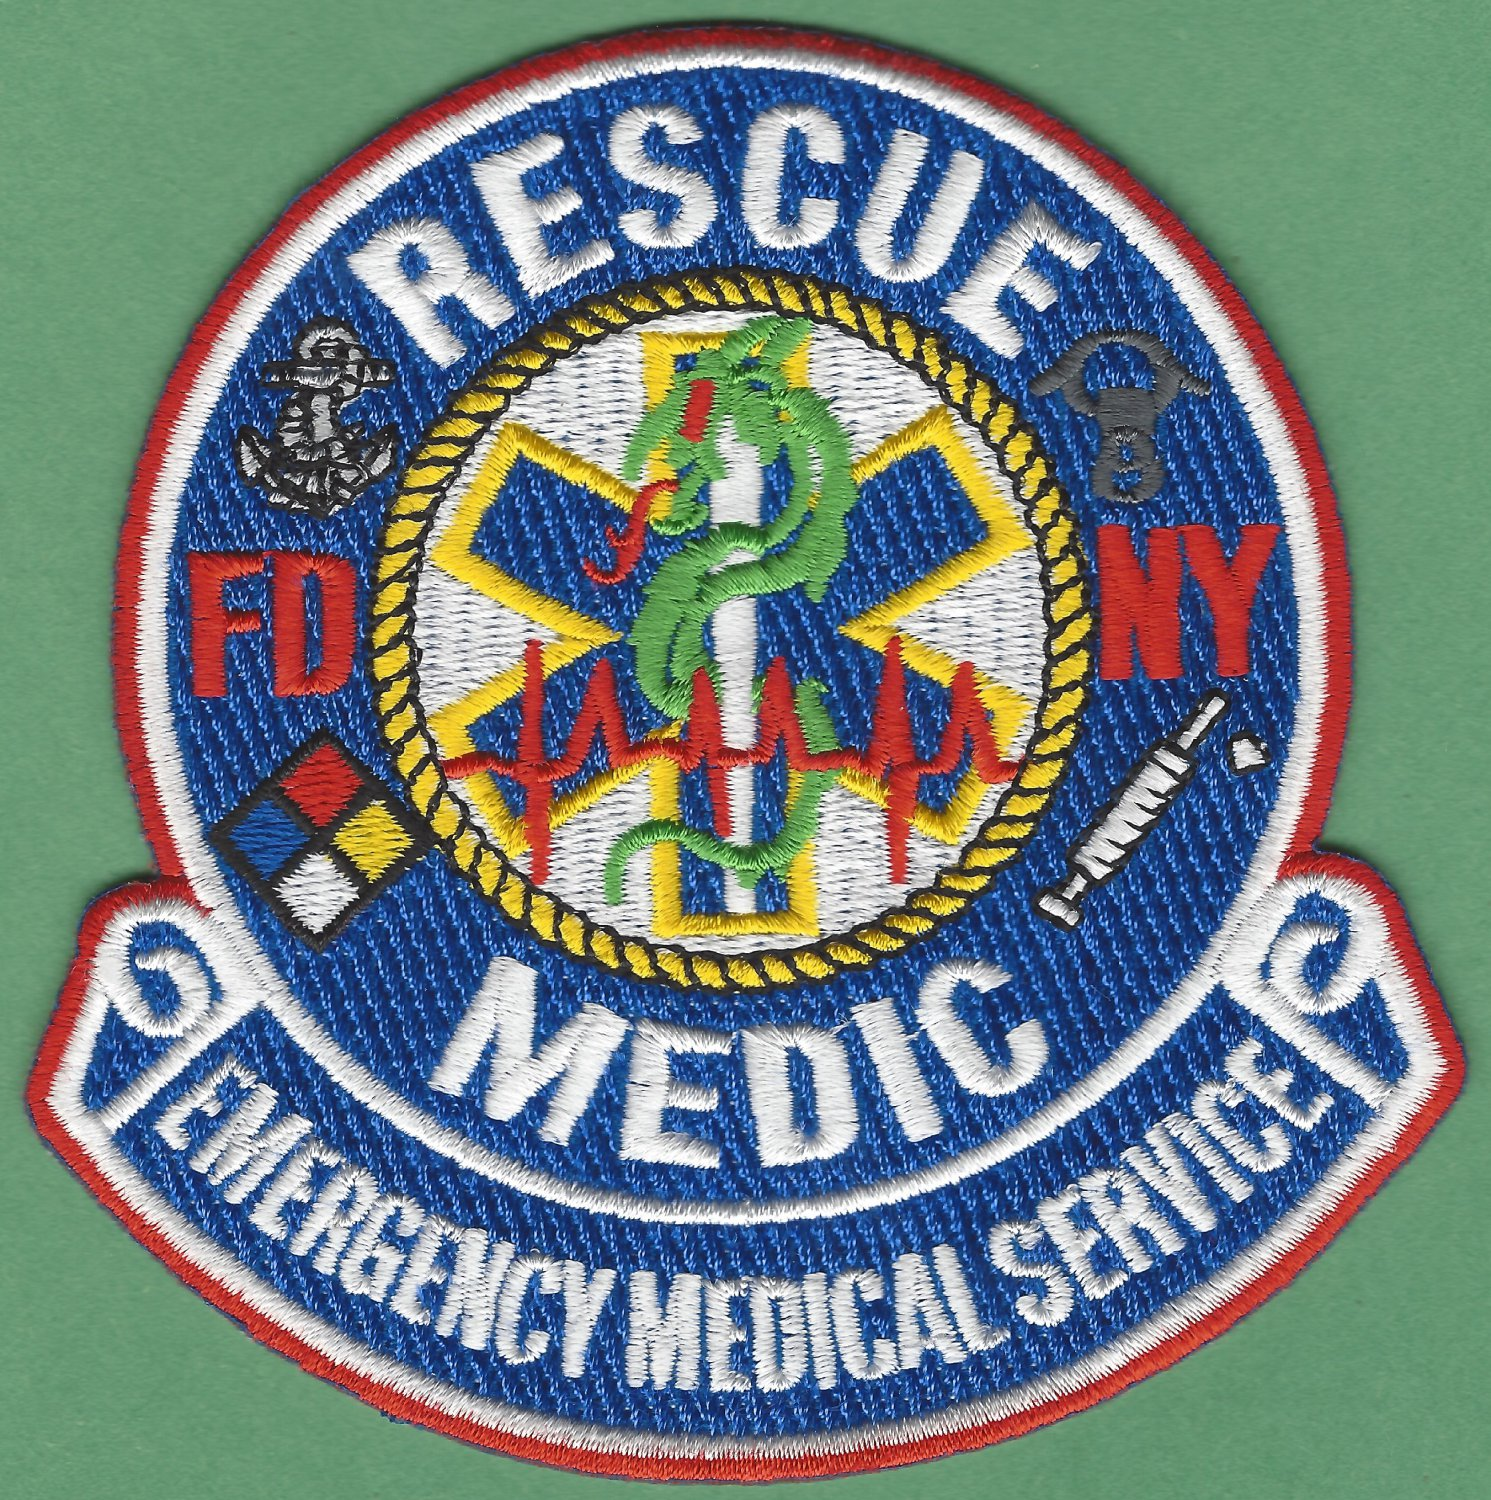 New York EMS Emergency Medical Service Rescue Medic Fire Patch